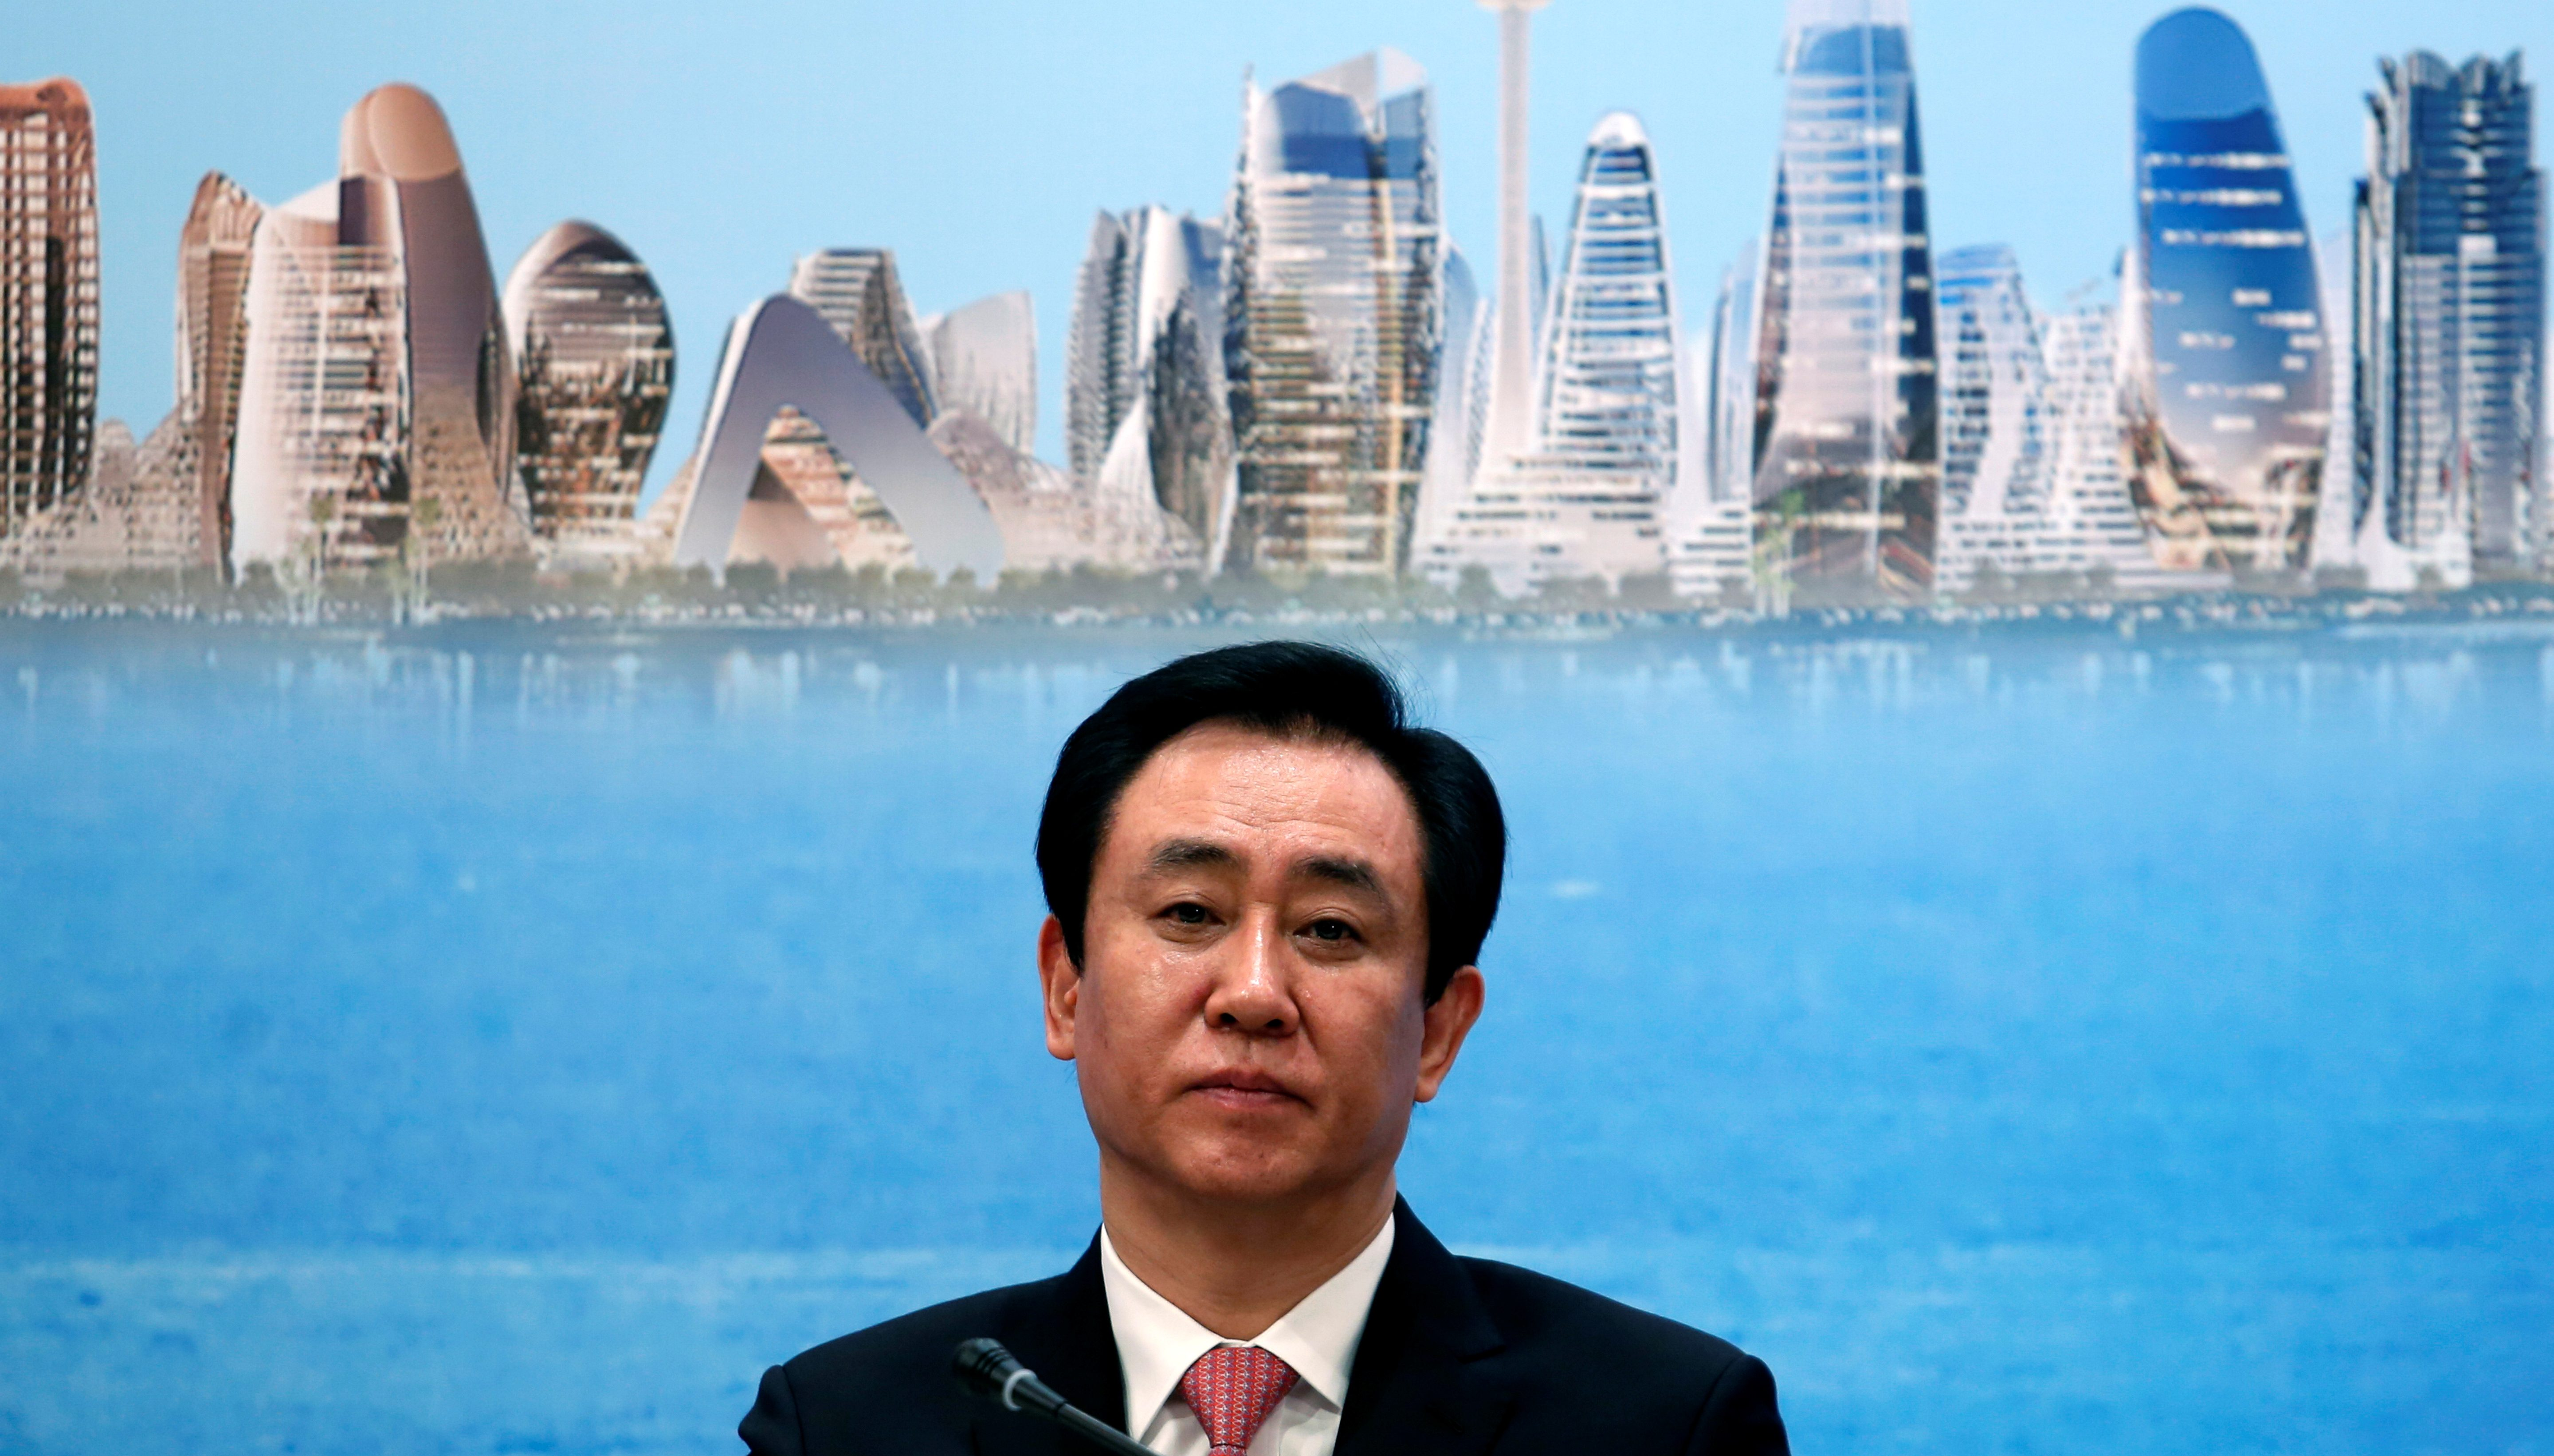 China Evergrande Group Chairman Hui Ka Yan attends a news conference on the property developer's annual results in Hong Kong, China March 28, 2017.